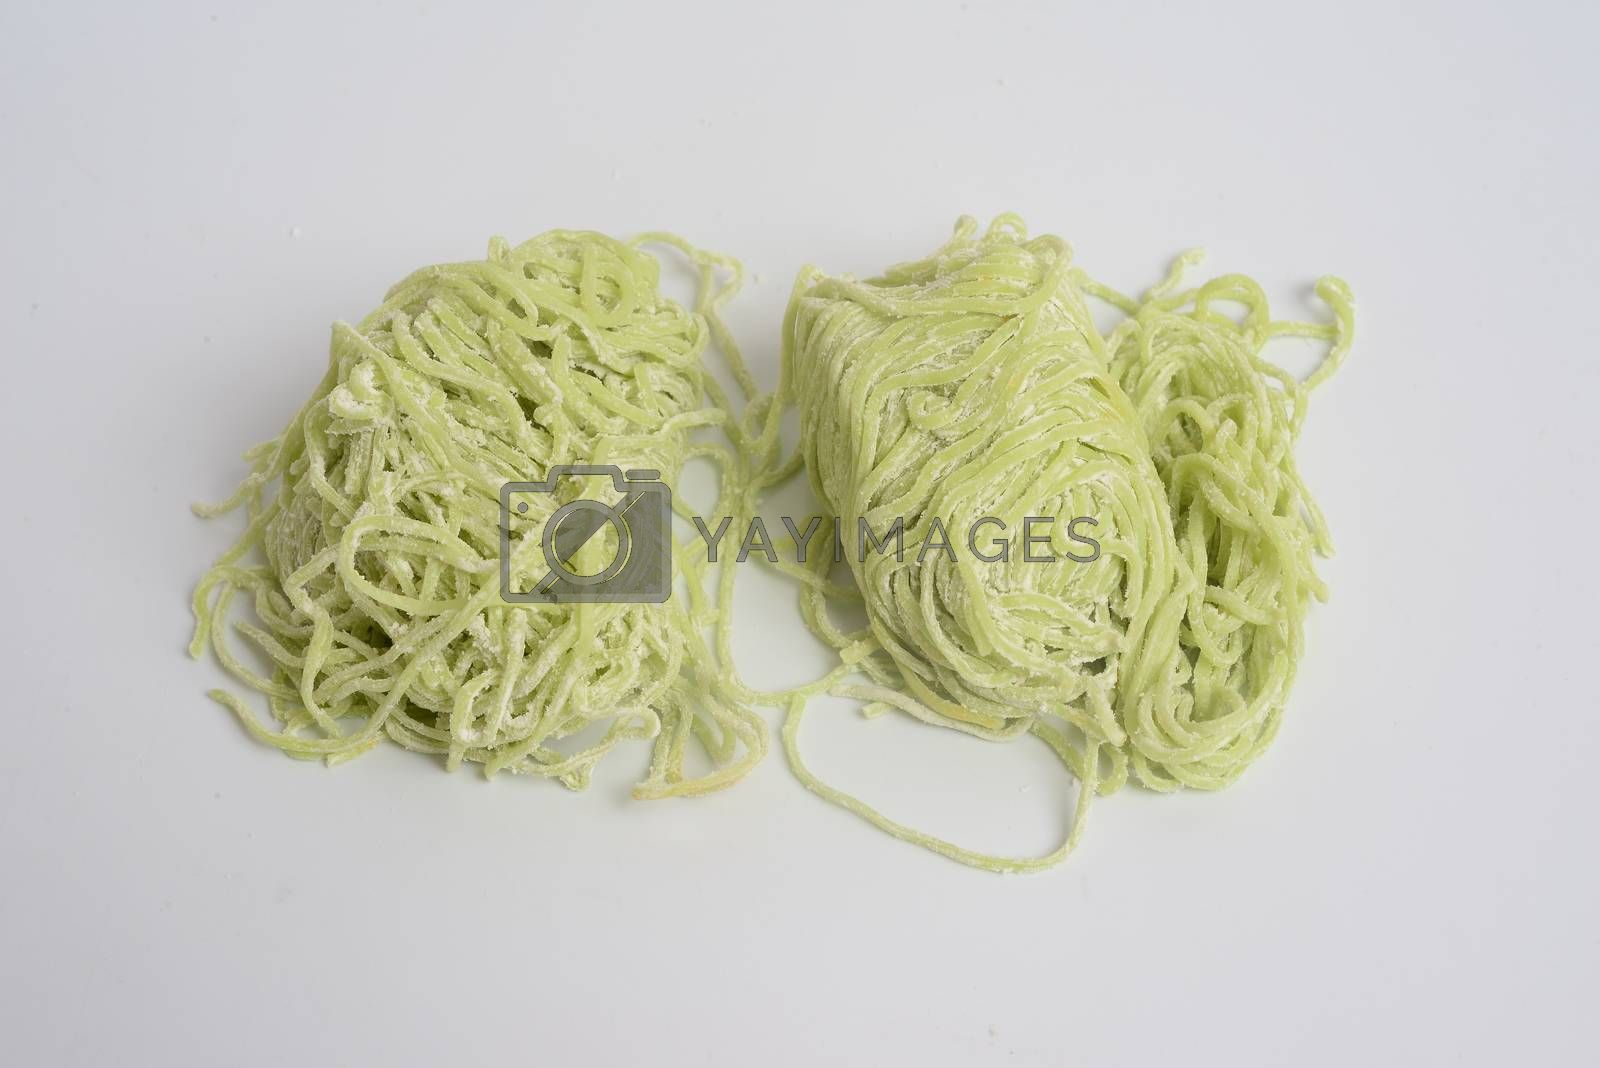 Jade noodle, vegetable noodles, green noodles on white background